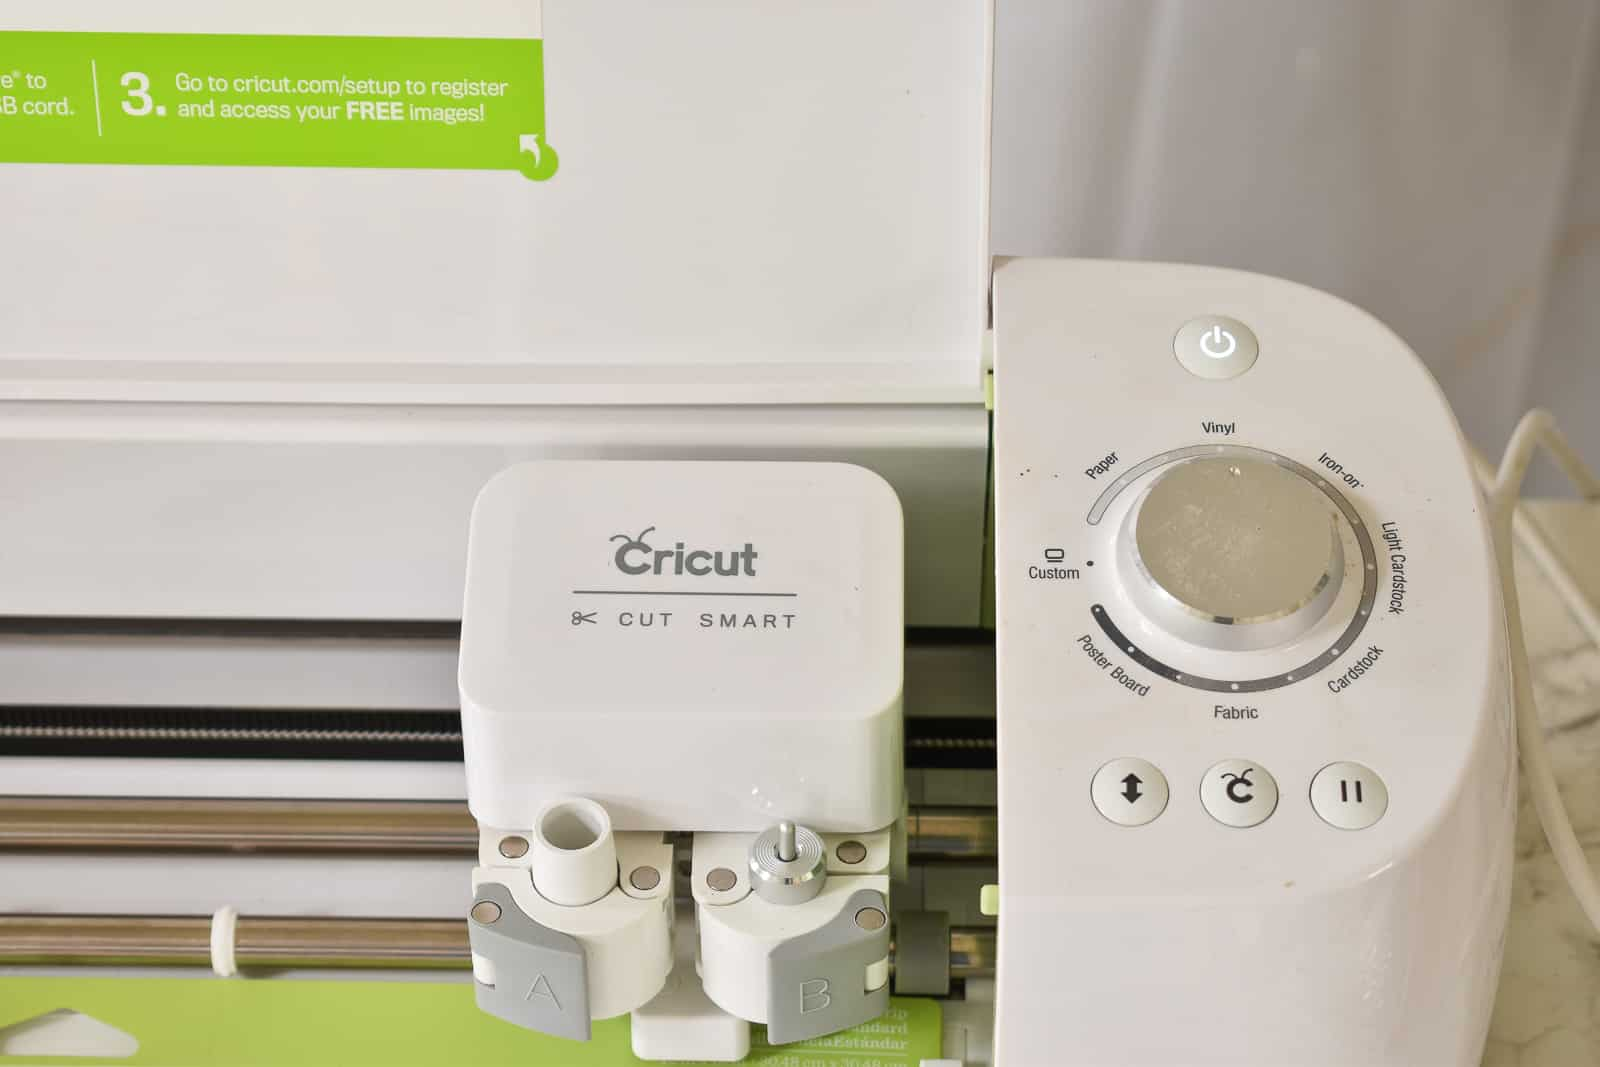 select settings on cricut